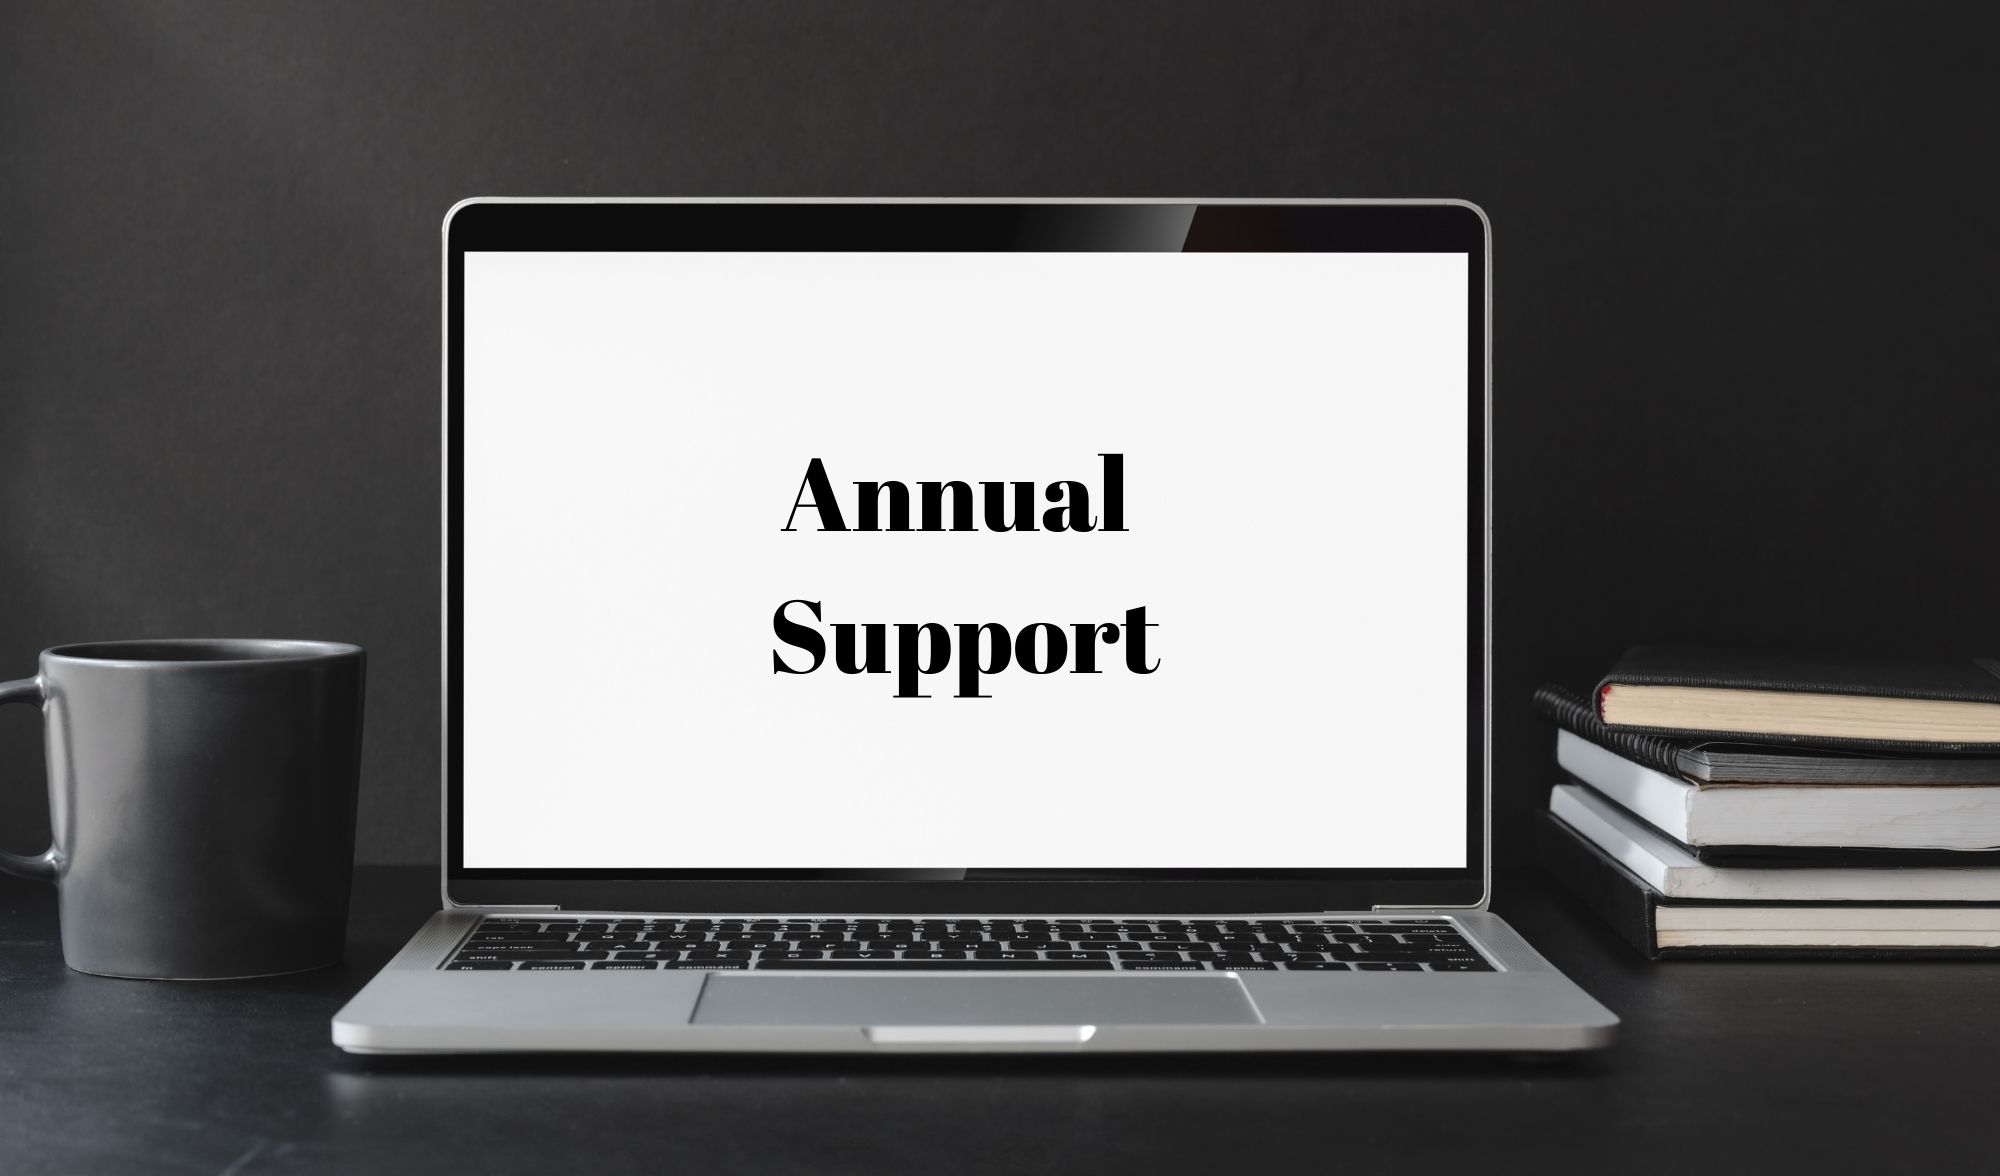 Laptop with words Annual Support